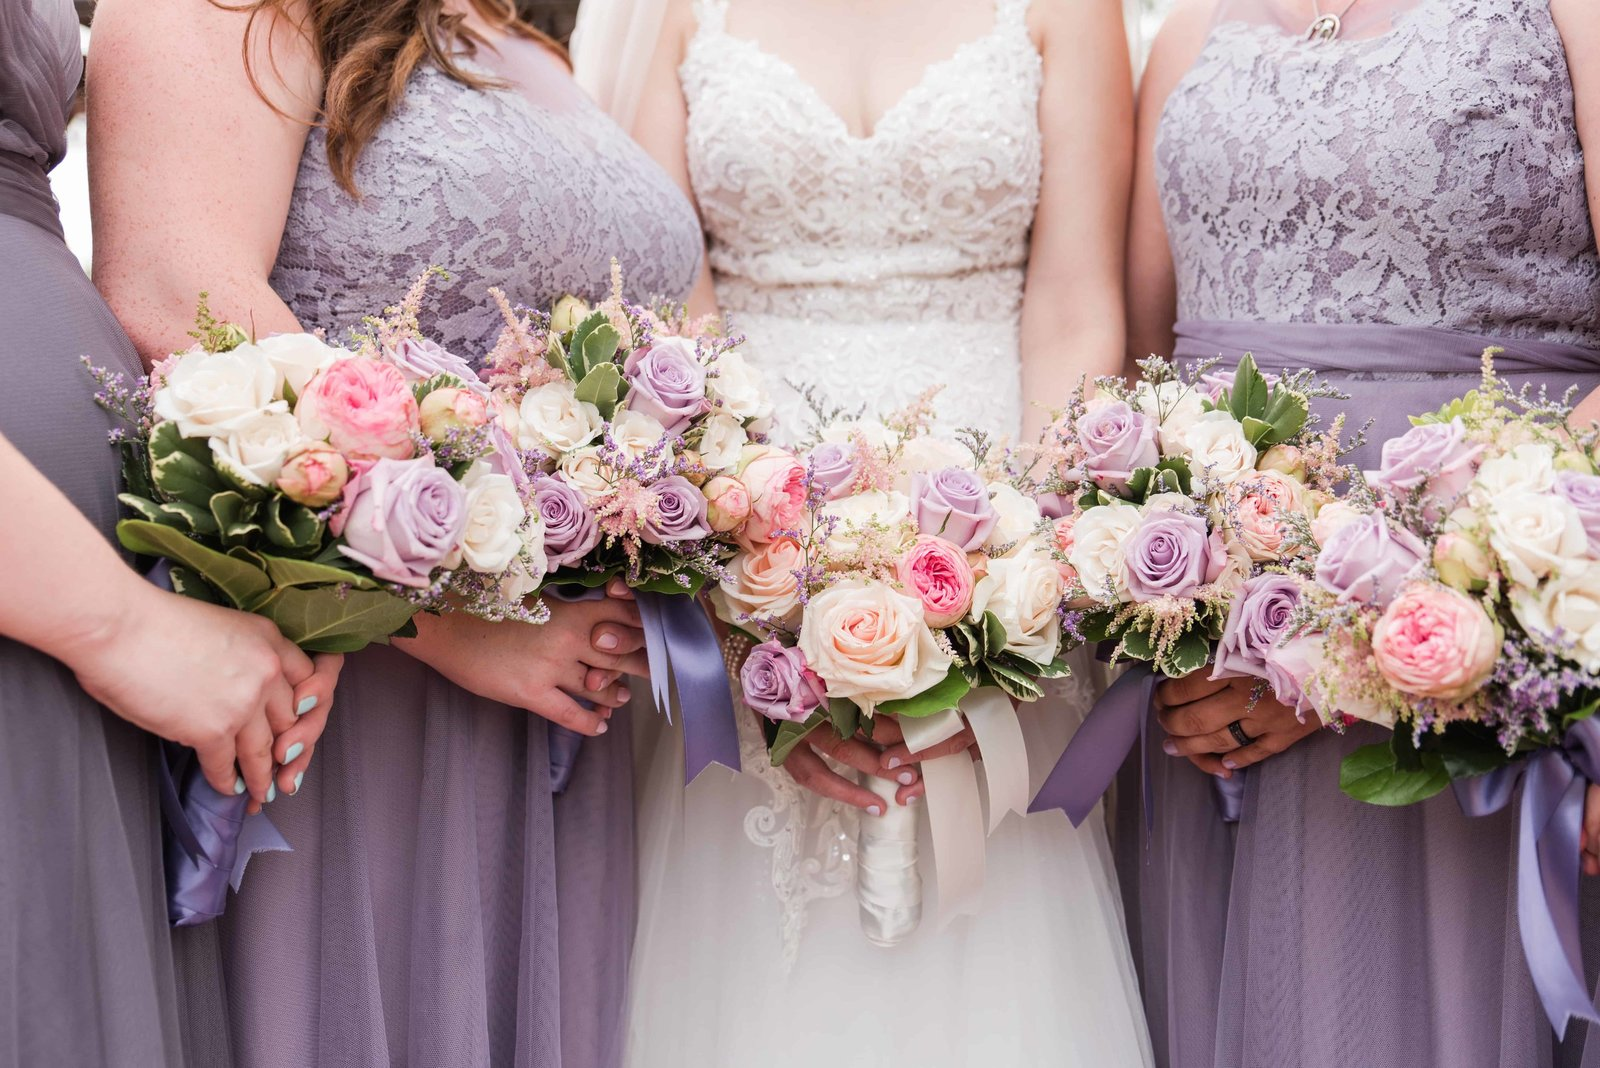 Bride and bridesmaids showing off their wedding flowers